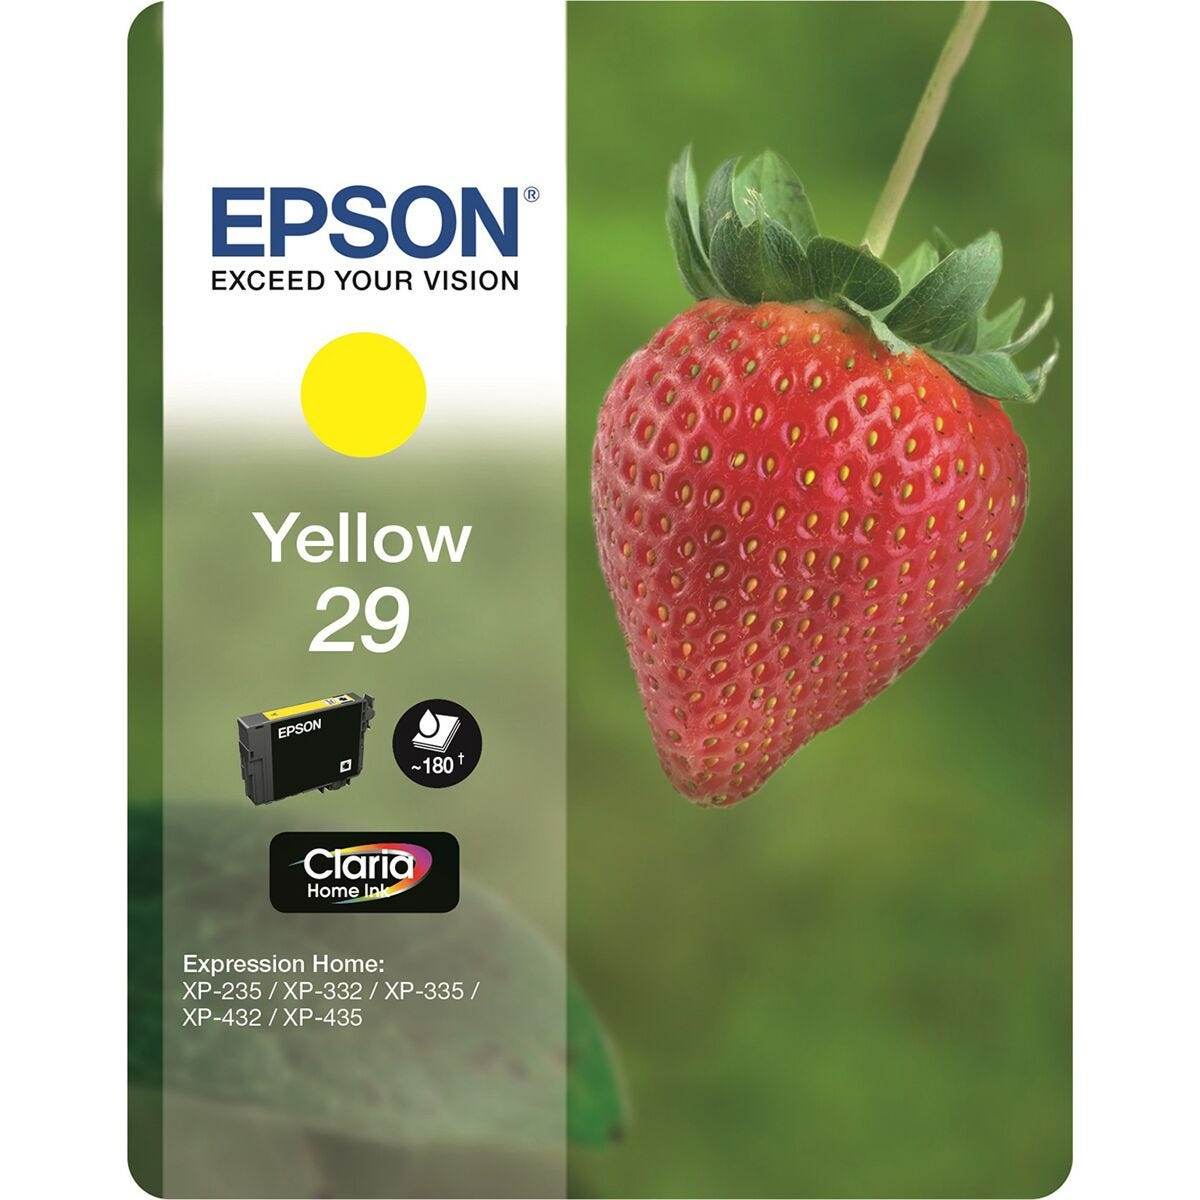 Epson 29 Strawberry Home Ink Cartridge Yellow